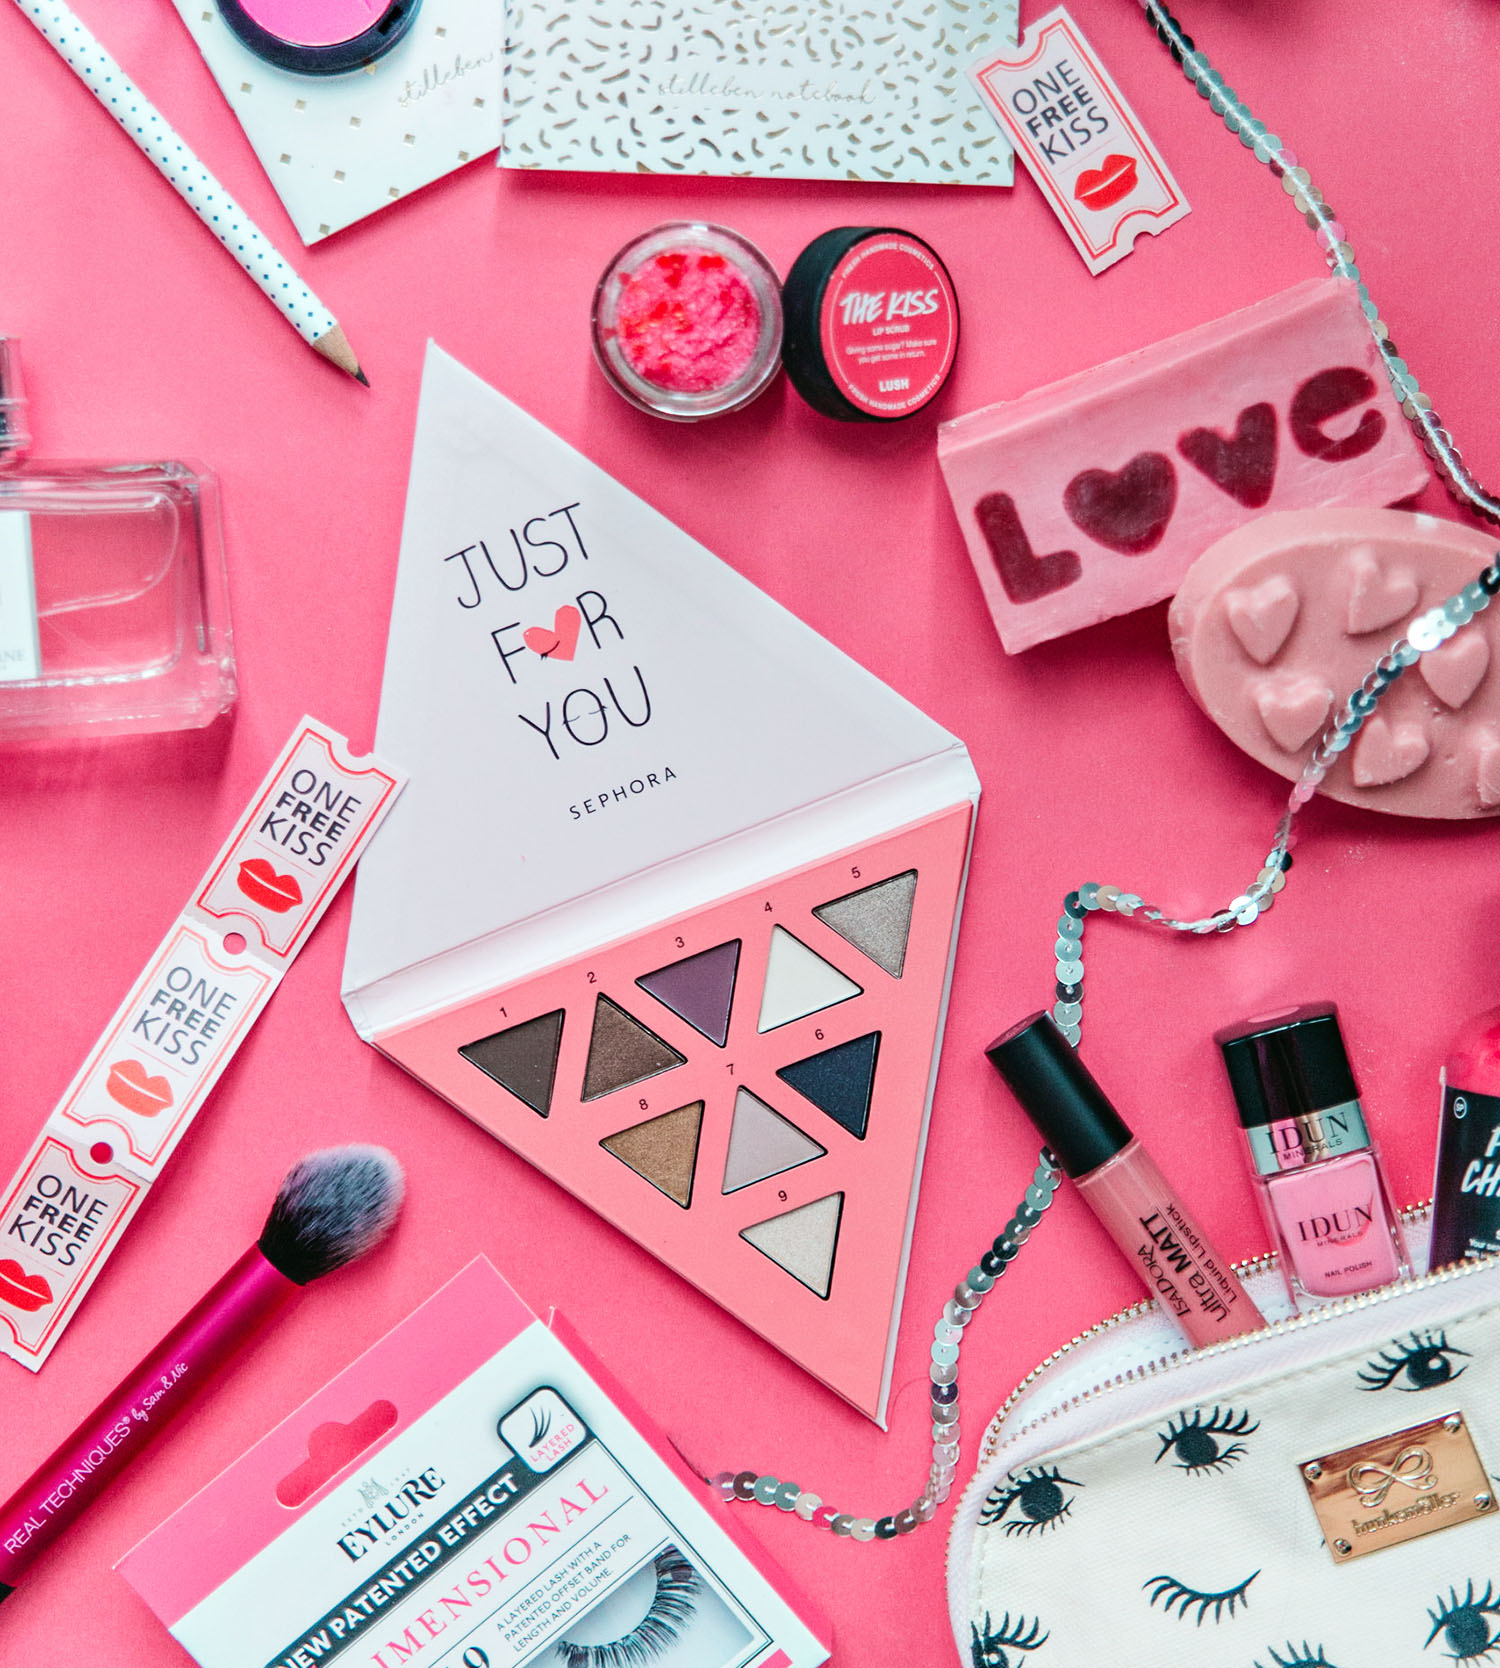 Flatlay with Pink Valentine's Day Treats for Yourself / Alla hjärtans dag-presenter